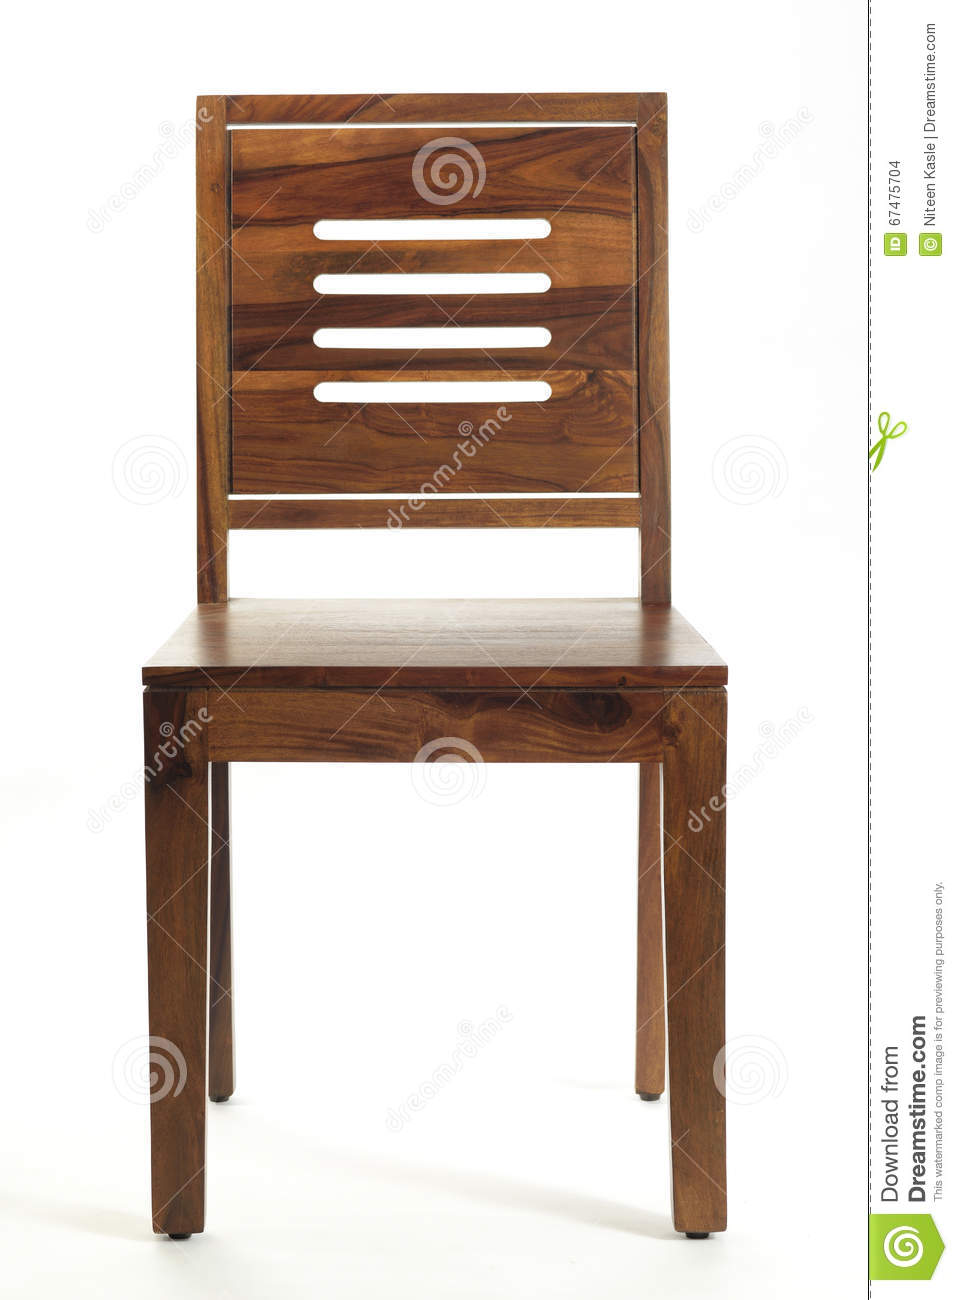 Wooden chair front view - Front View Of Wooden Chair On White Background Stock Photo